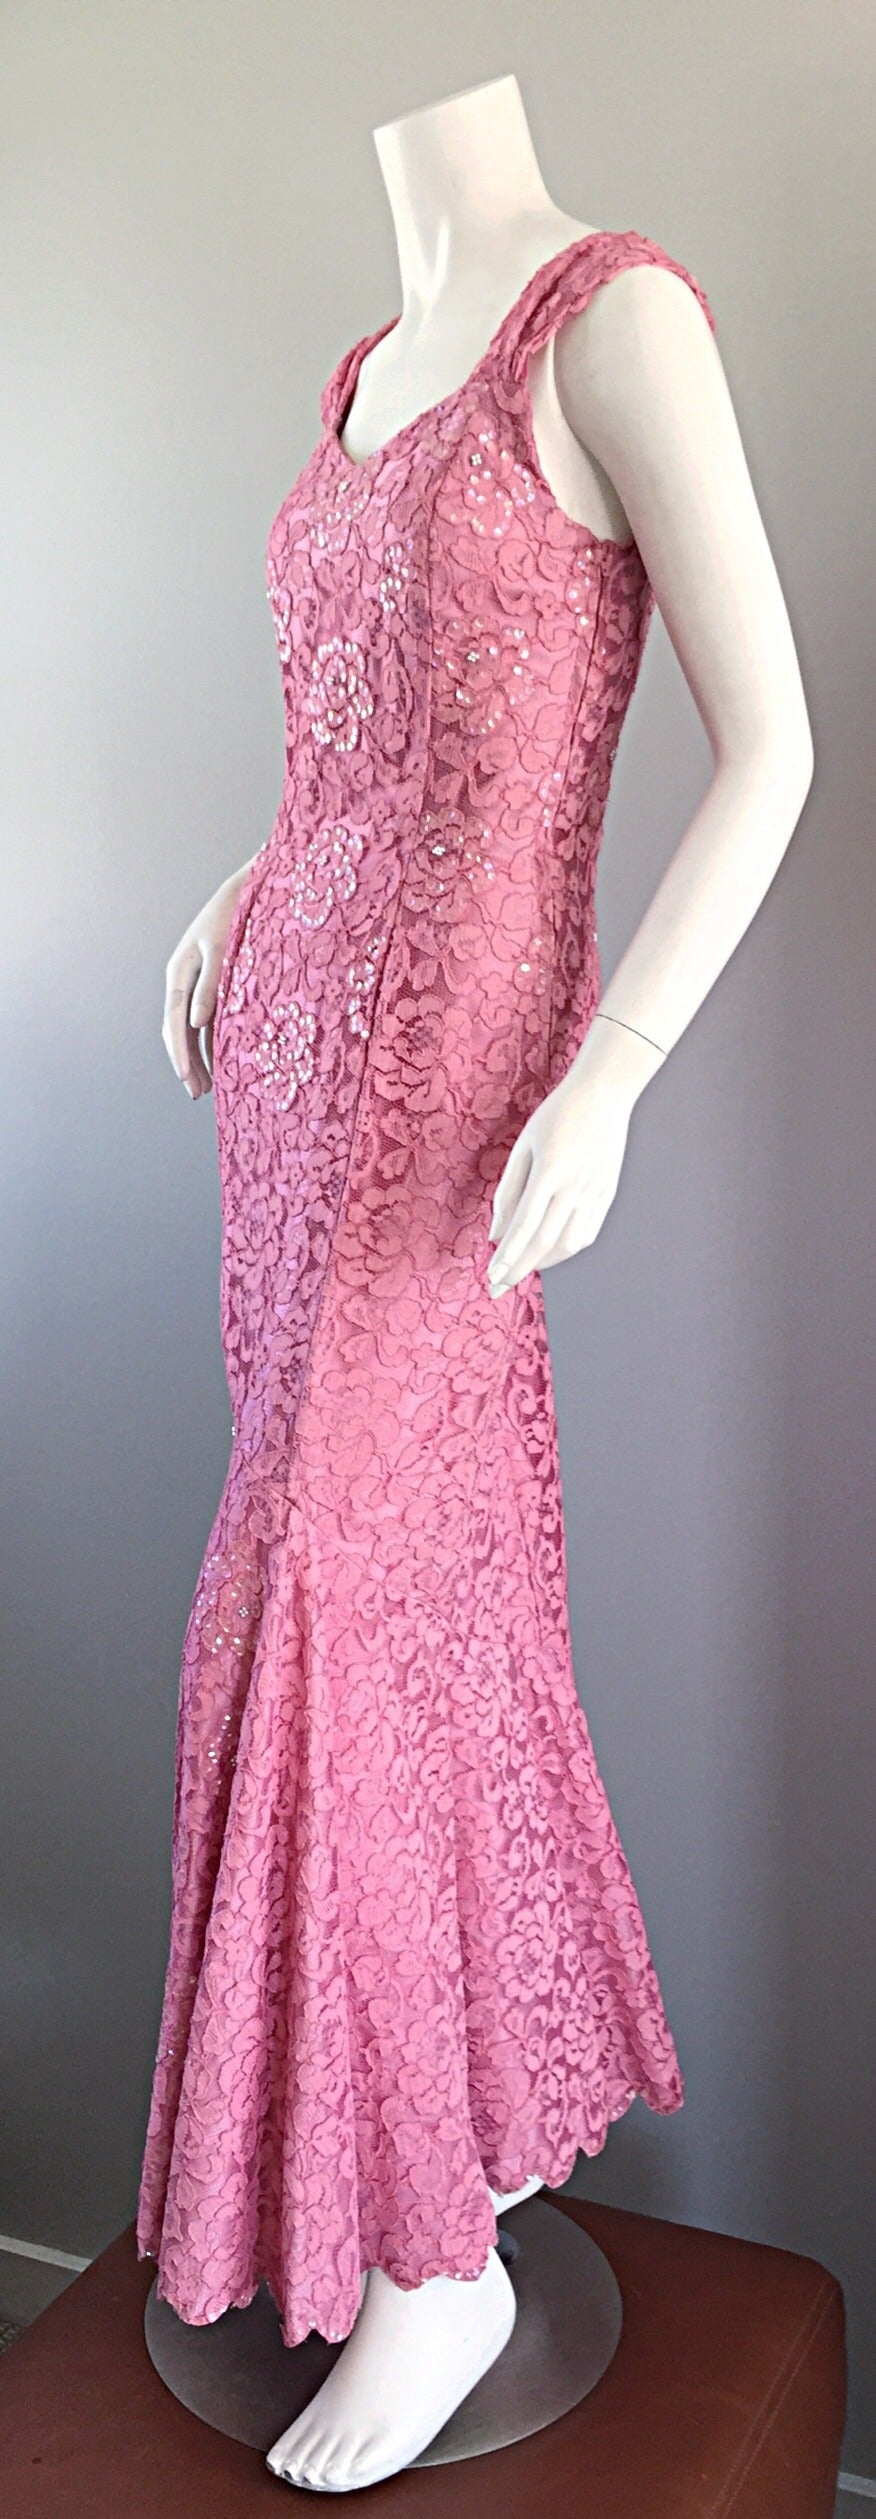 Gorgeous 1950s 50s Couture Pink Vintage Mermaid Dress w/ Chantilly Lace + Sequin 6